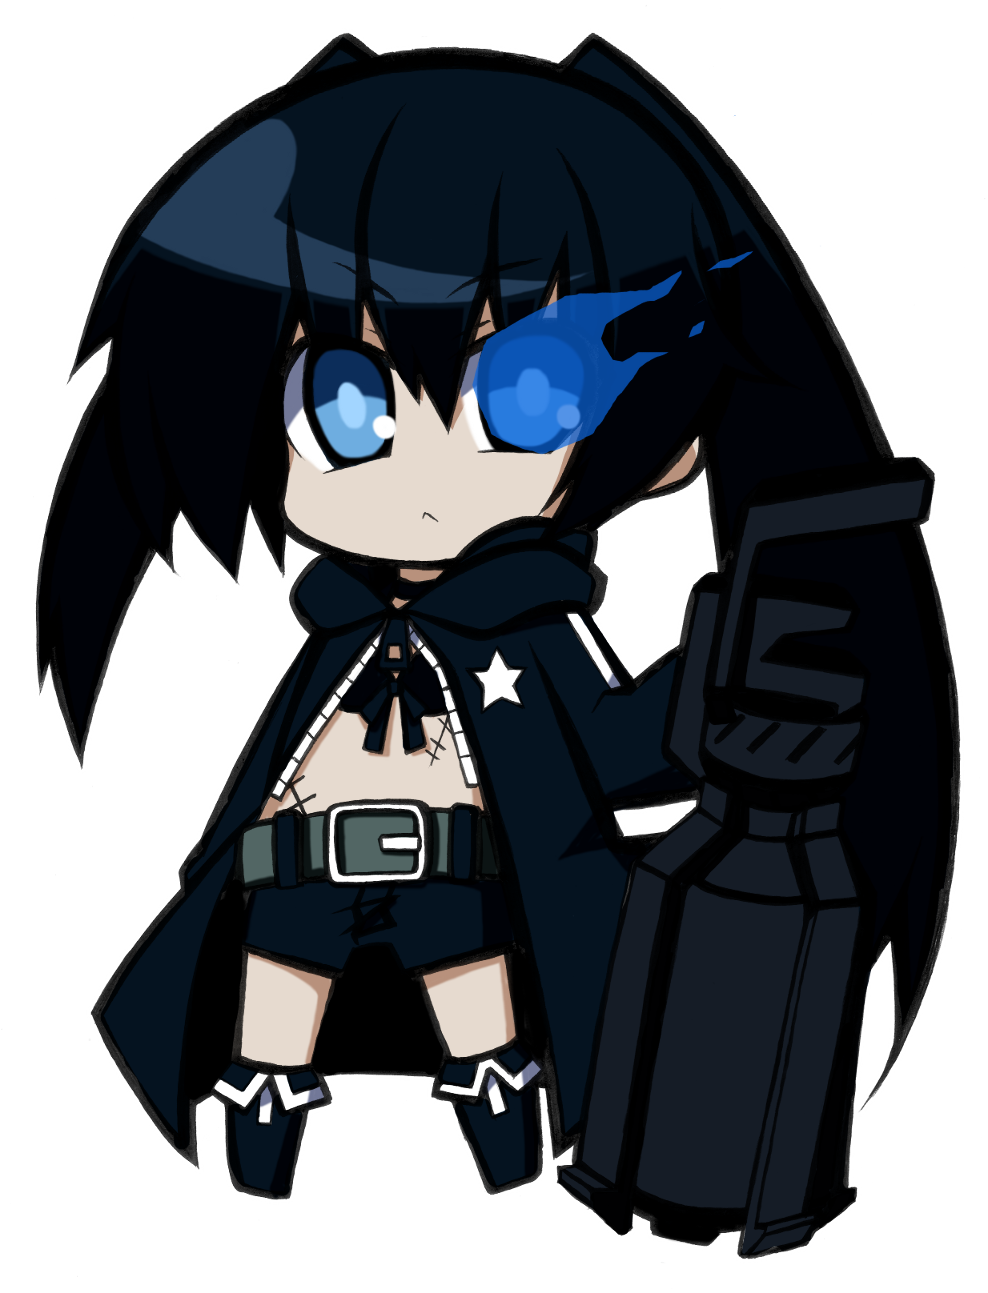 black_hair black_rock_shooter black_rock_shooter_(character) blue_eyes chibi coat highres long_hair midriff navel pale_skin scar shorts shun_ss sword thigh_gap thighs transparent_background twintails weapon